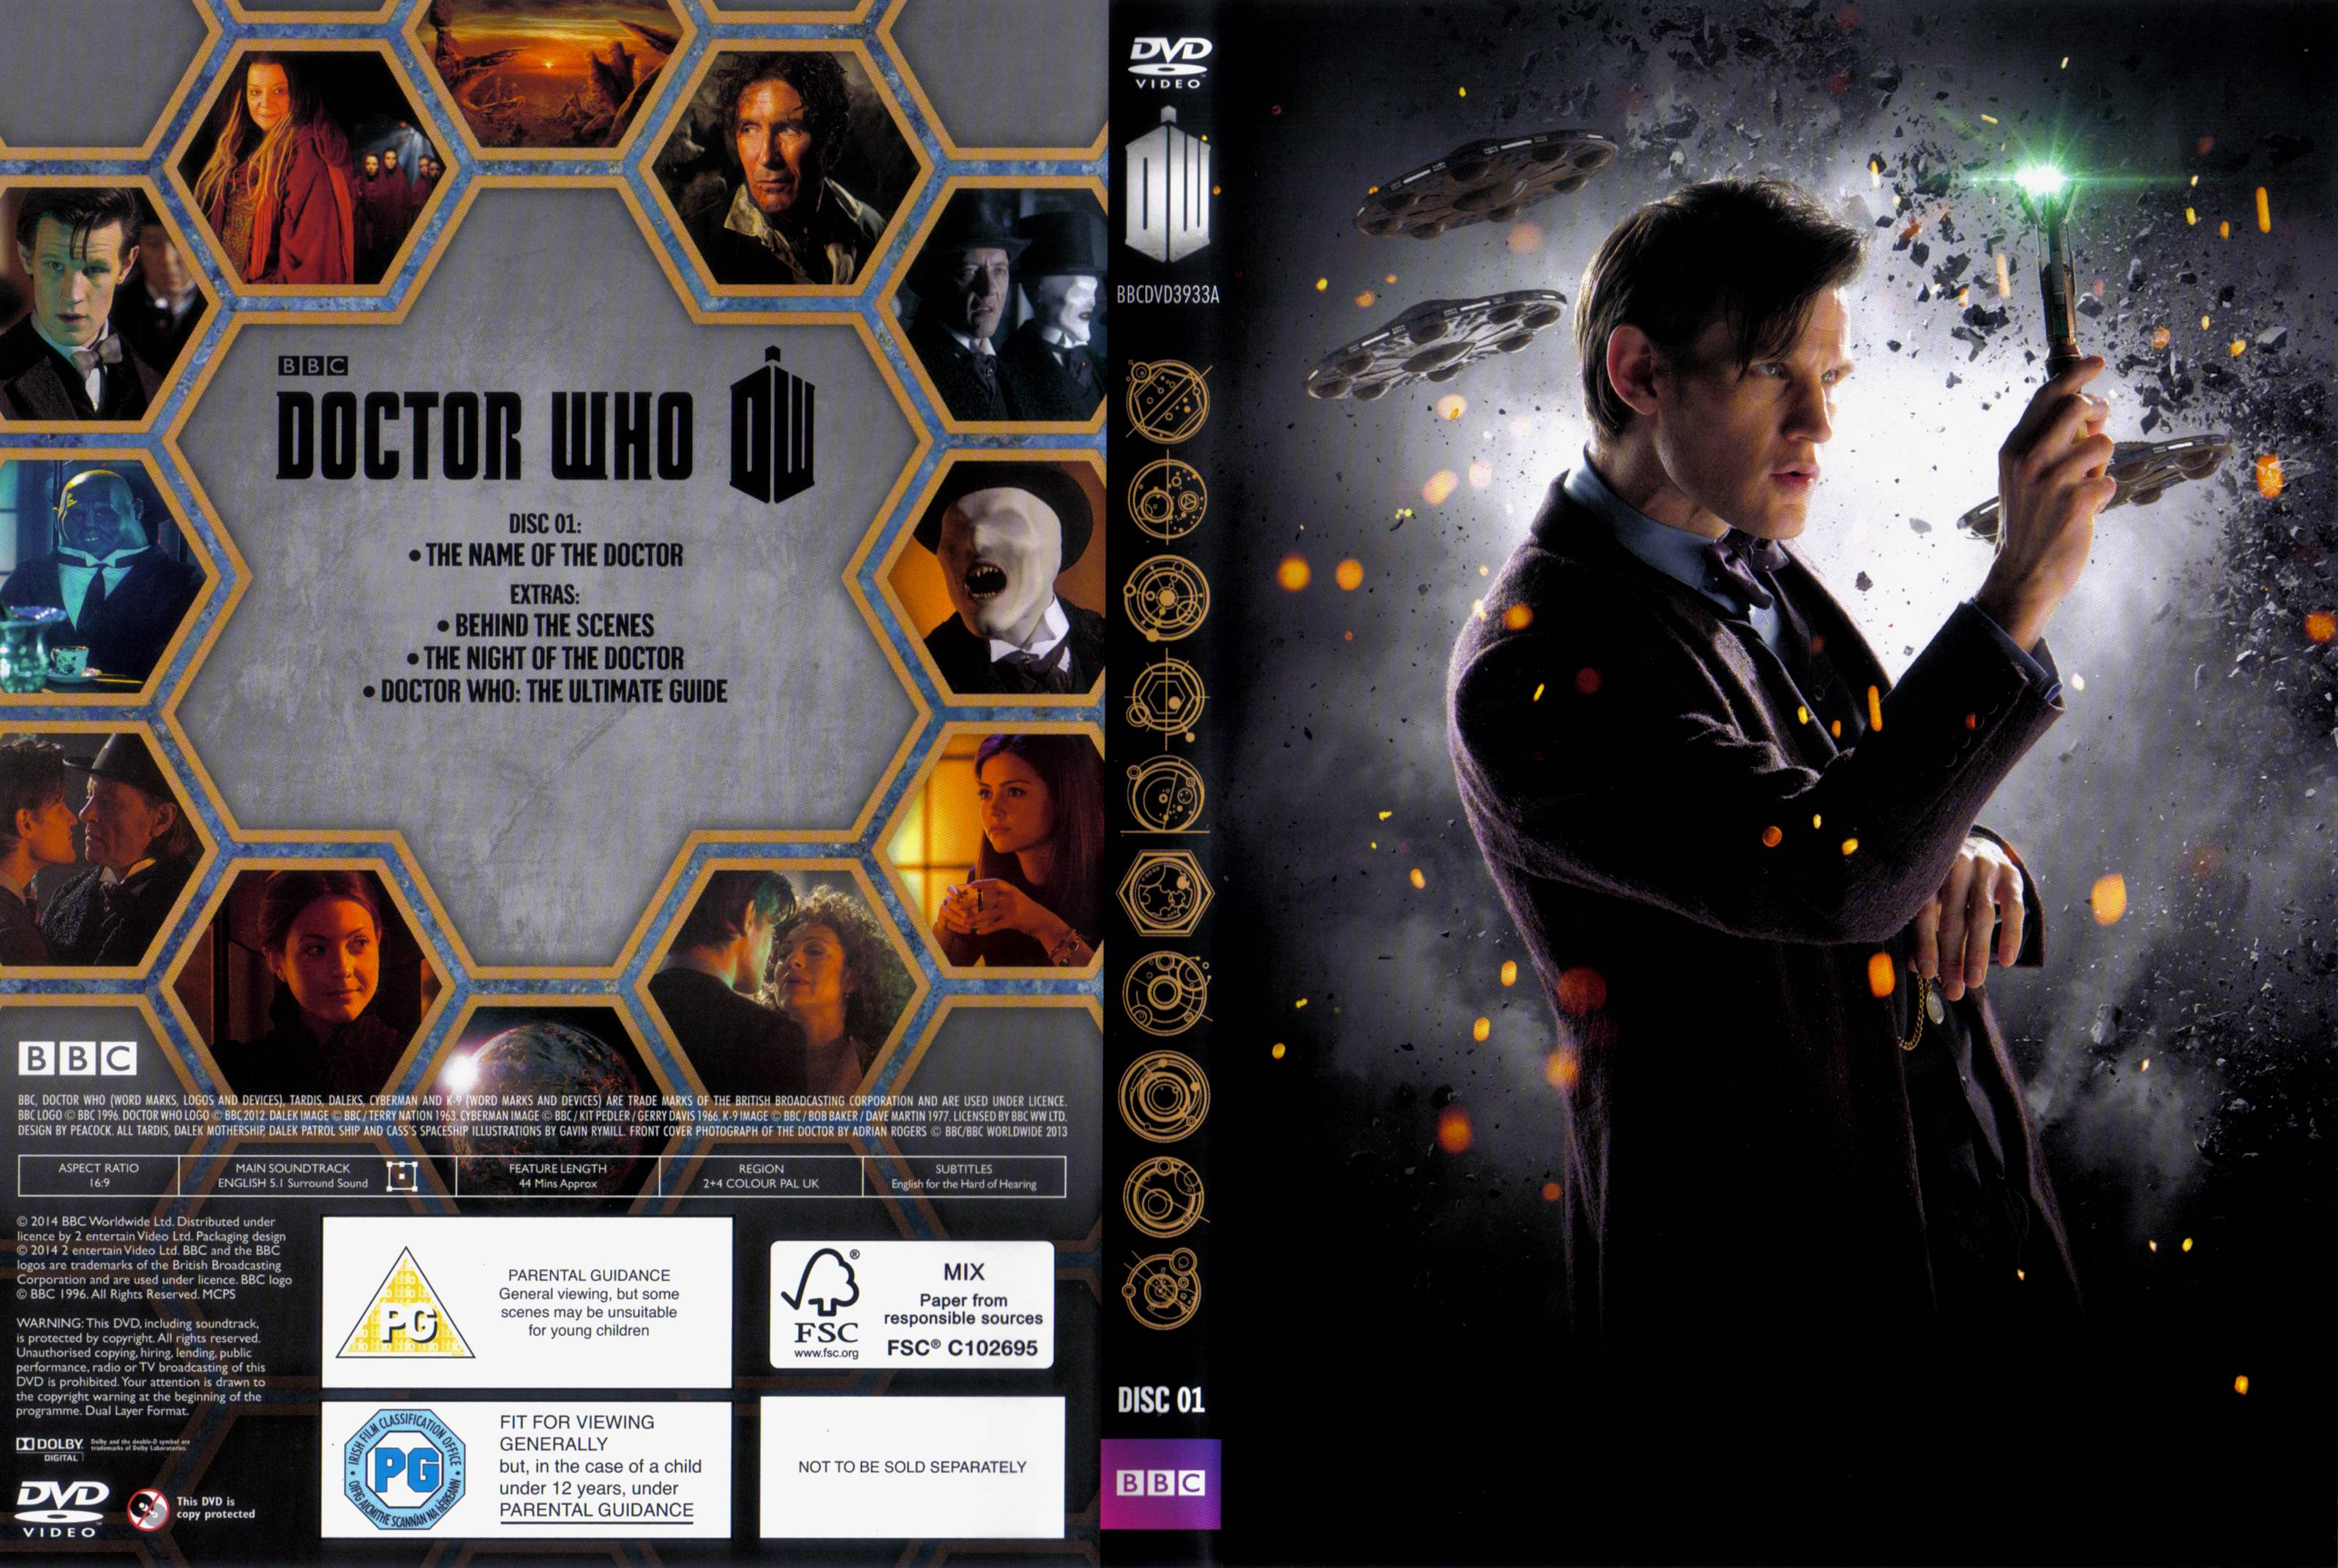 doctor who 50th anniversary collector\\\\\\\\\\\\\\\\\\\\\\\\\\\\\\\'s box set